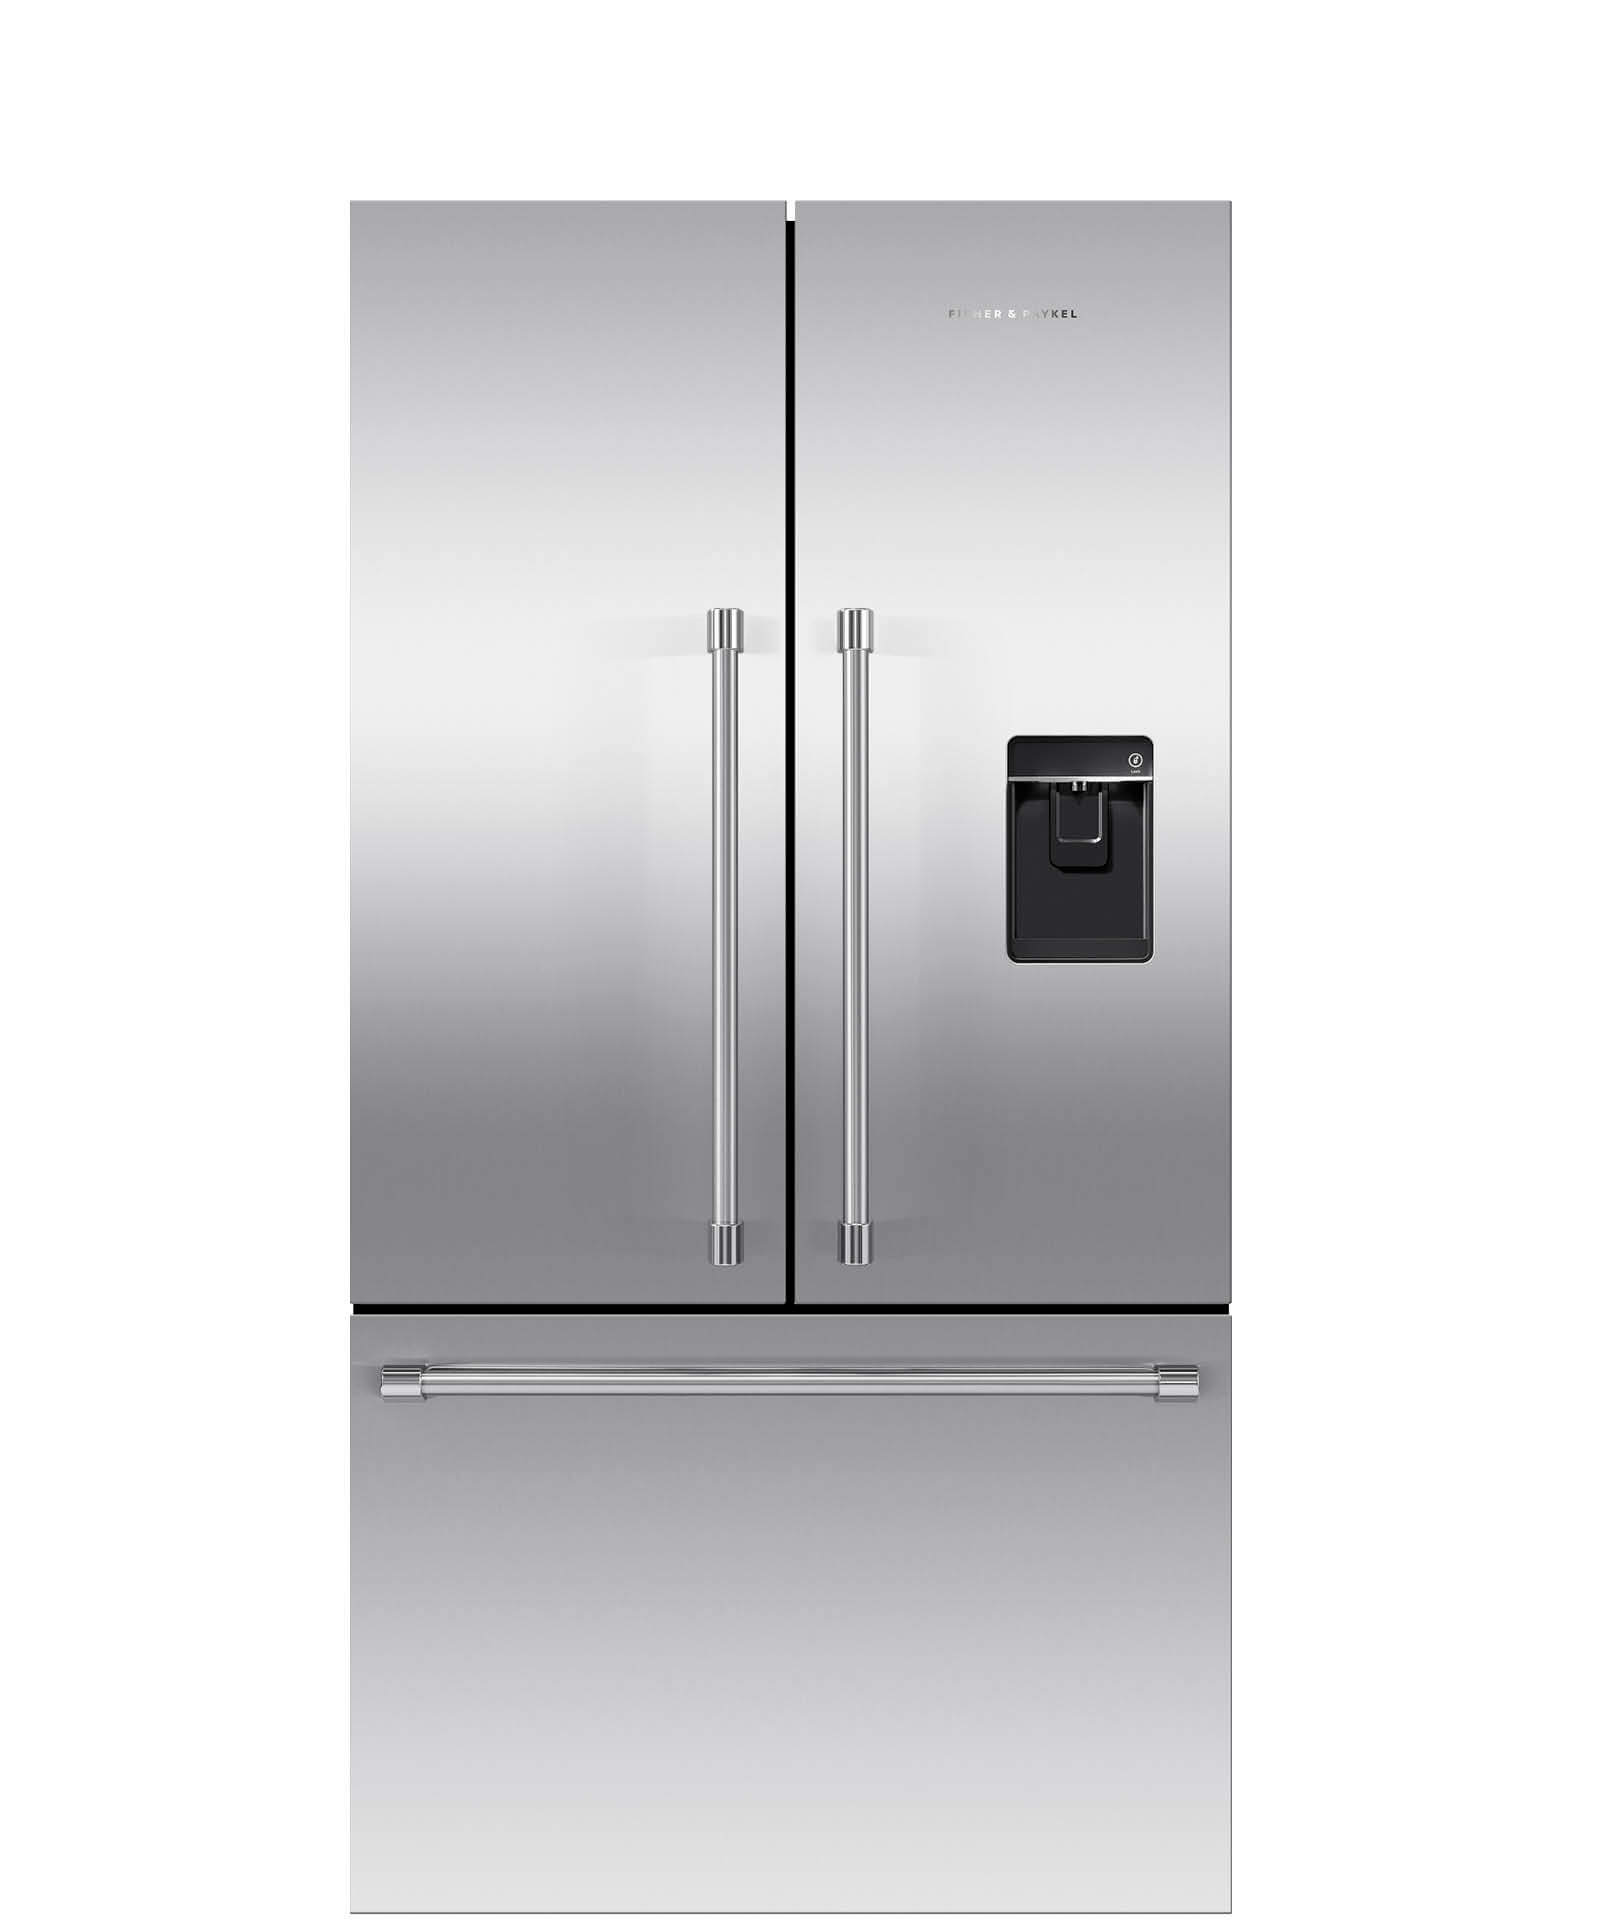 "RF201ACUSX1_N - ActiveSmart™ Fridge - French Door 36"" - 24446"